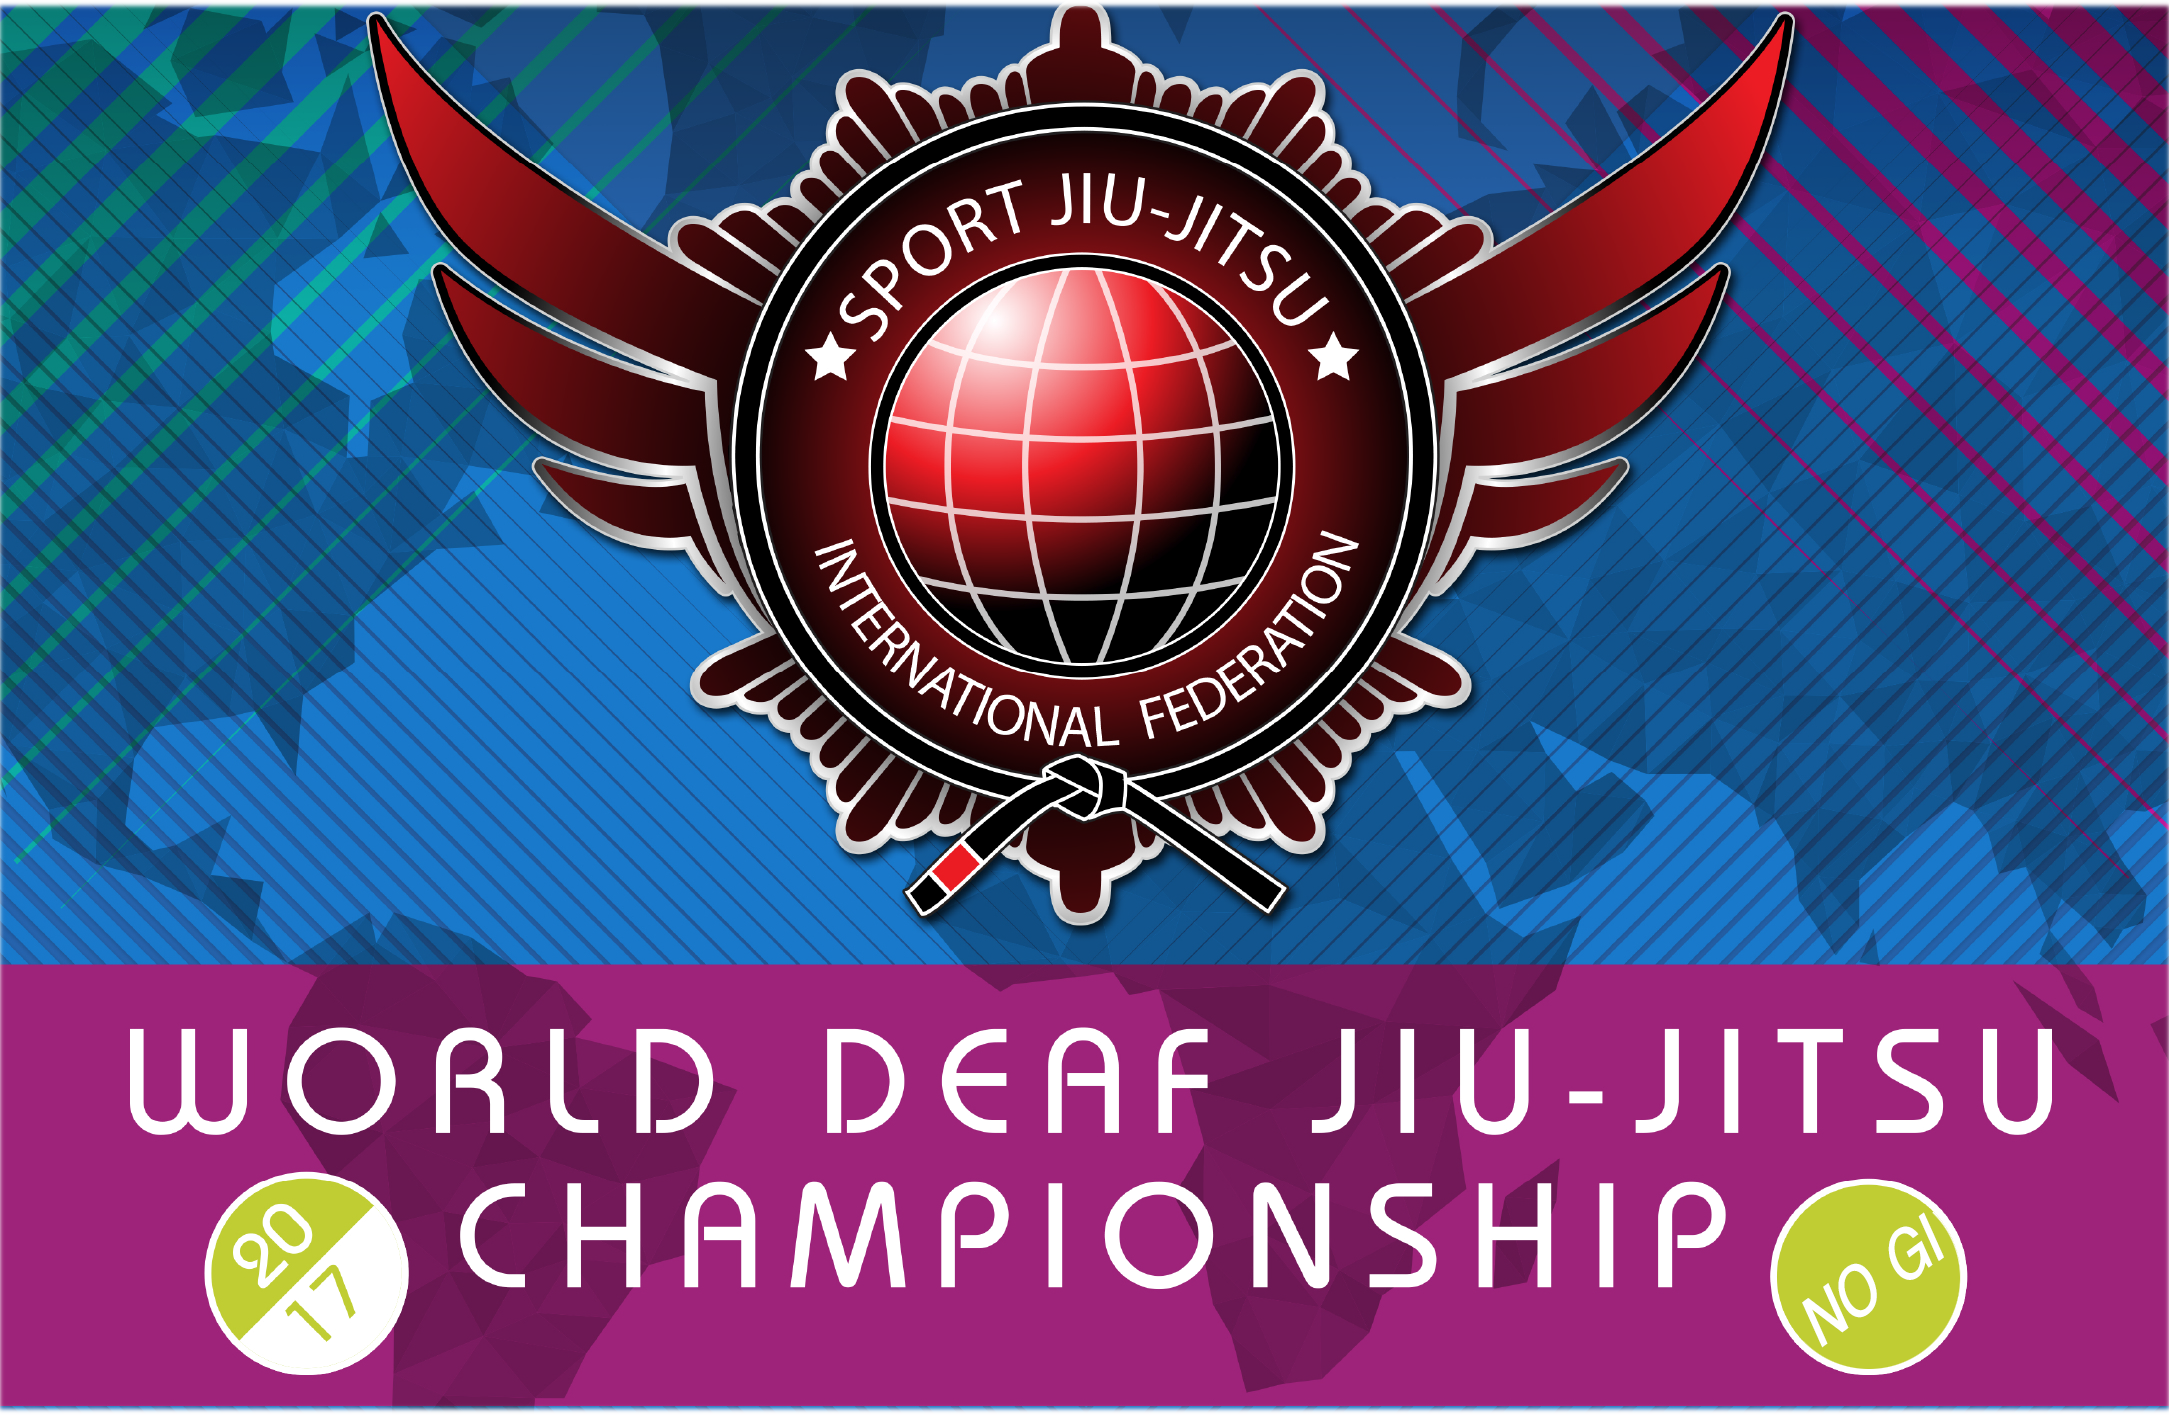 world deaf jiu-jitsu championship nogi